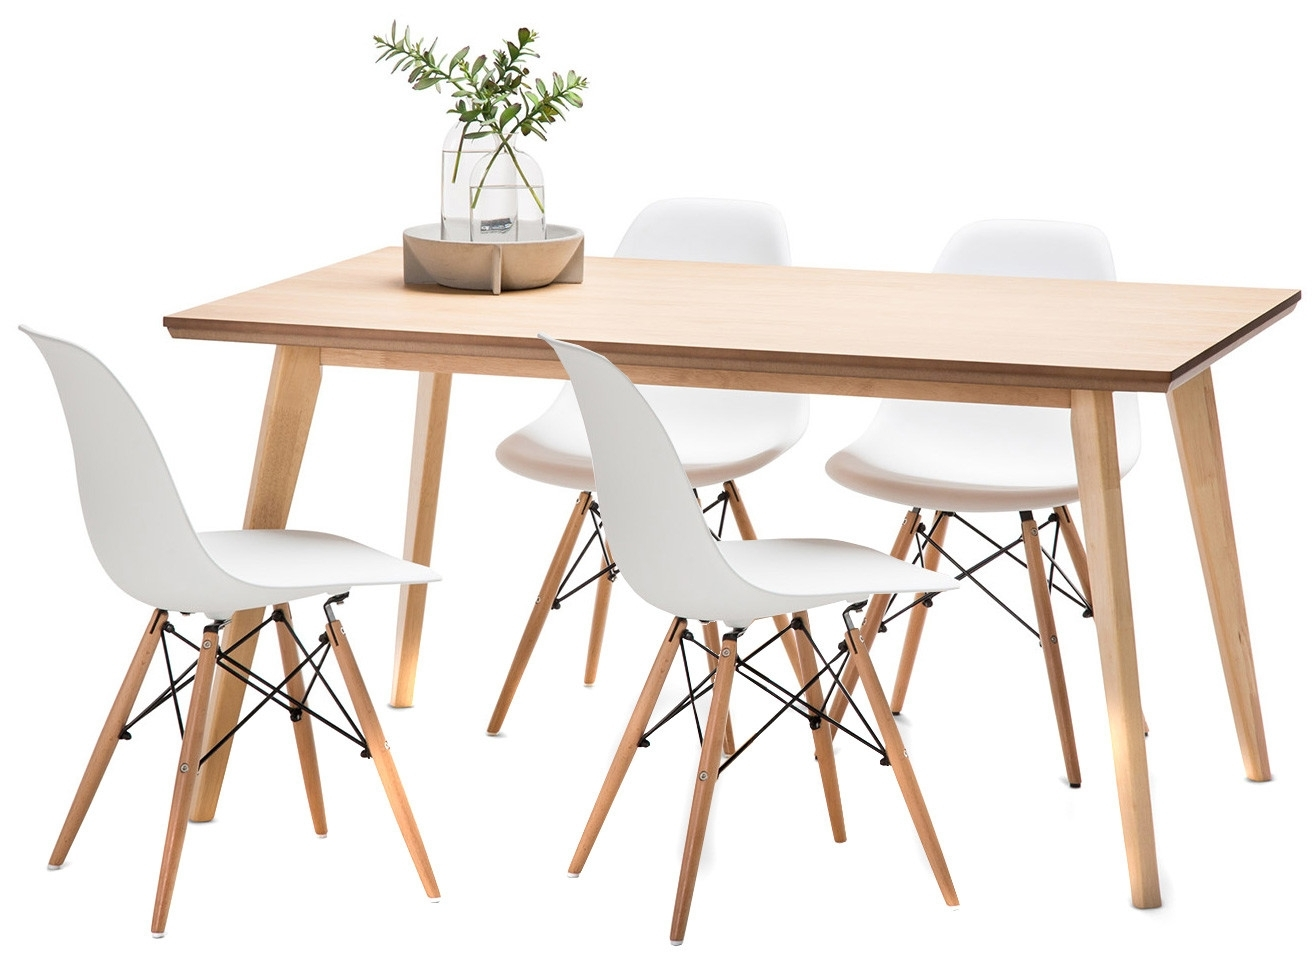 New Wyatt Dining Table Set With 4 Eames Replica Chairs | Ebay Regarding 2017 Wyatt Dining Tables (View 13 of 20)